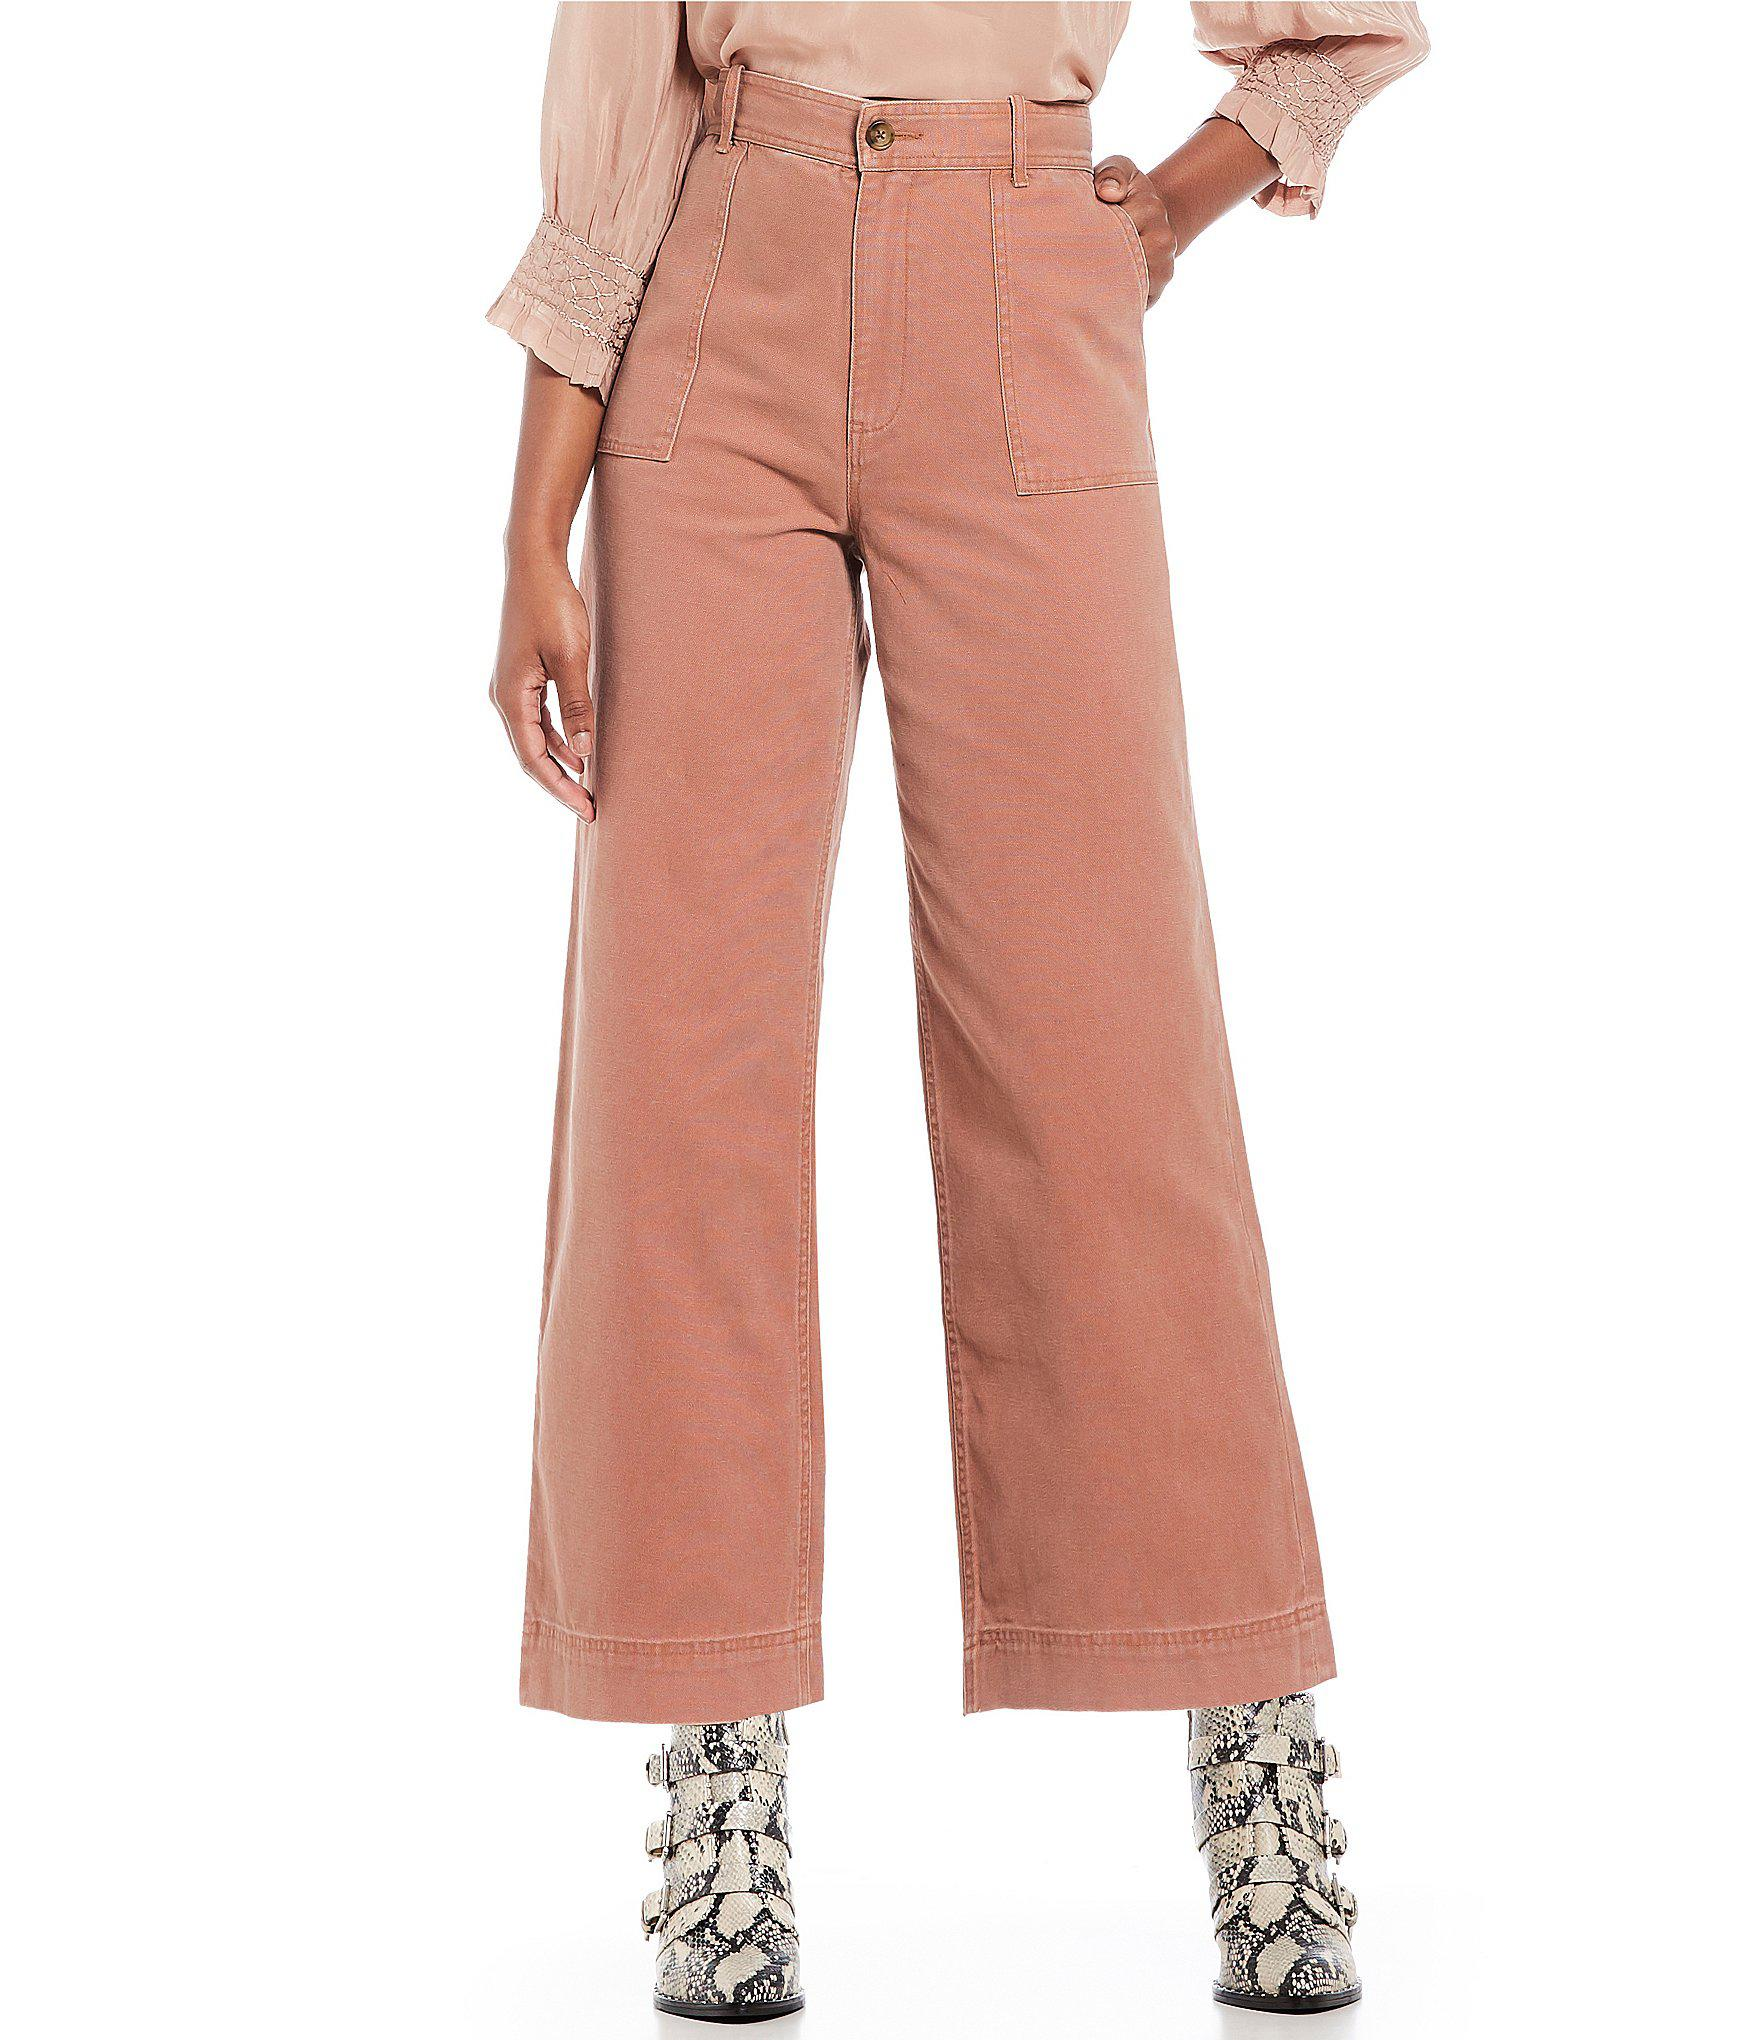 655bd13d9f6f Lyst - Frye Nadia High Rise Wide Leg Ankle Culotte Pant in Pink